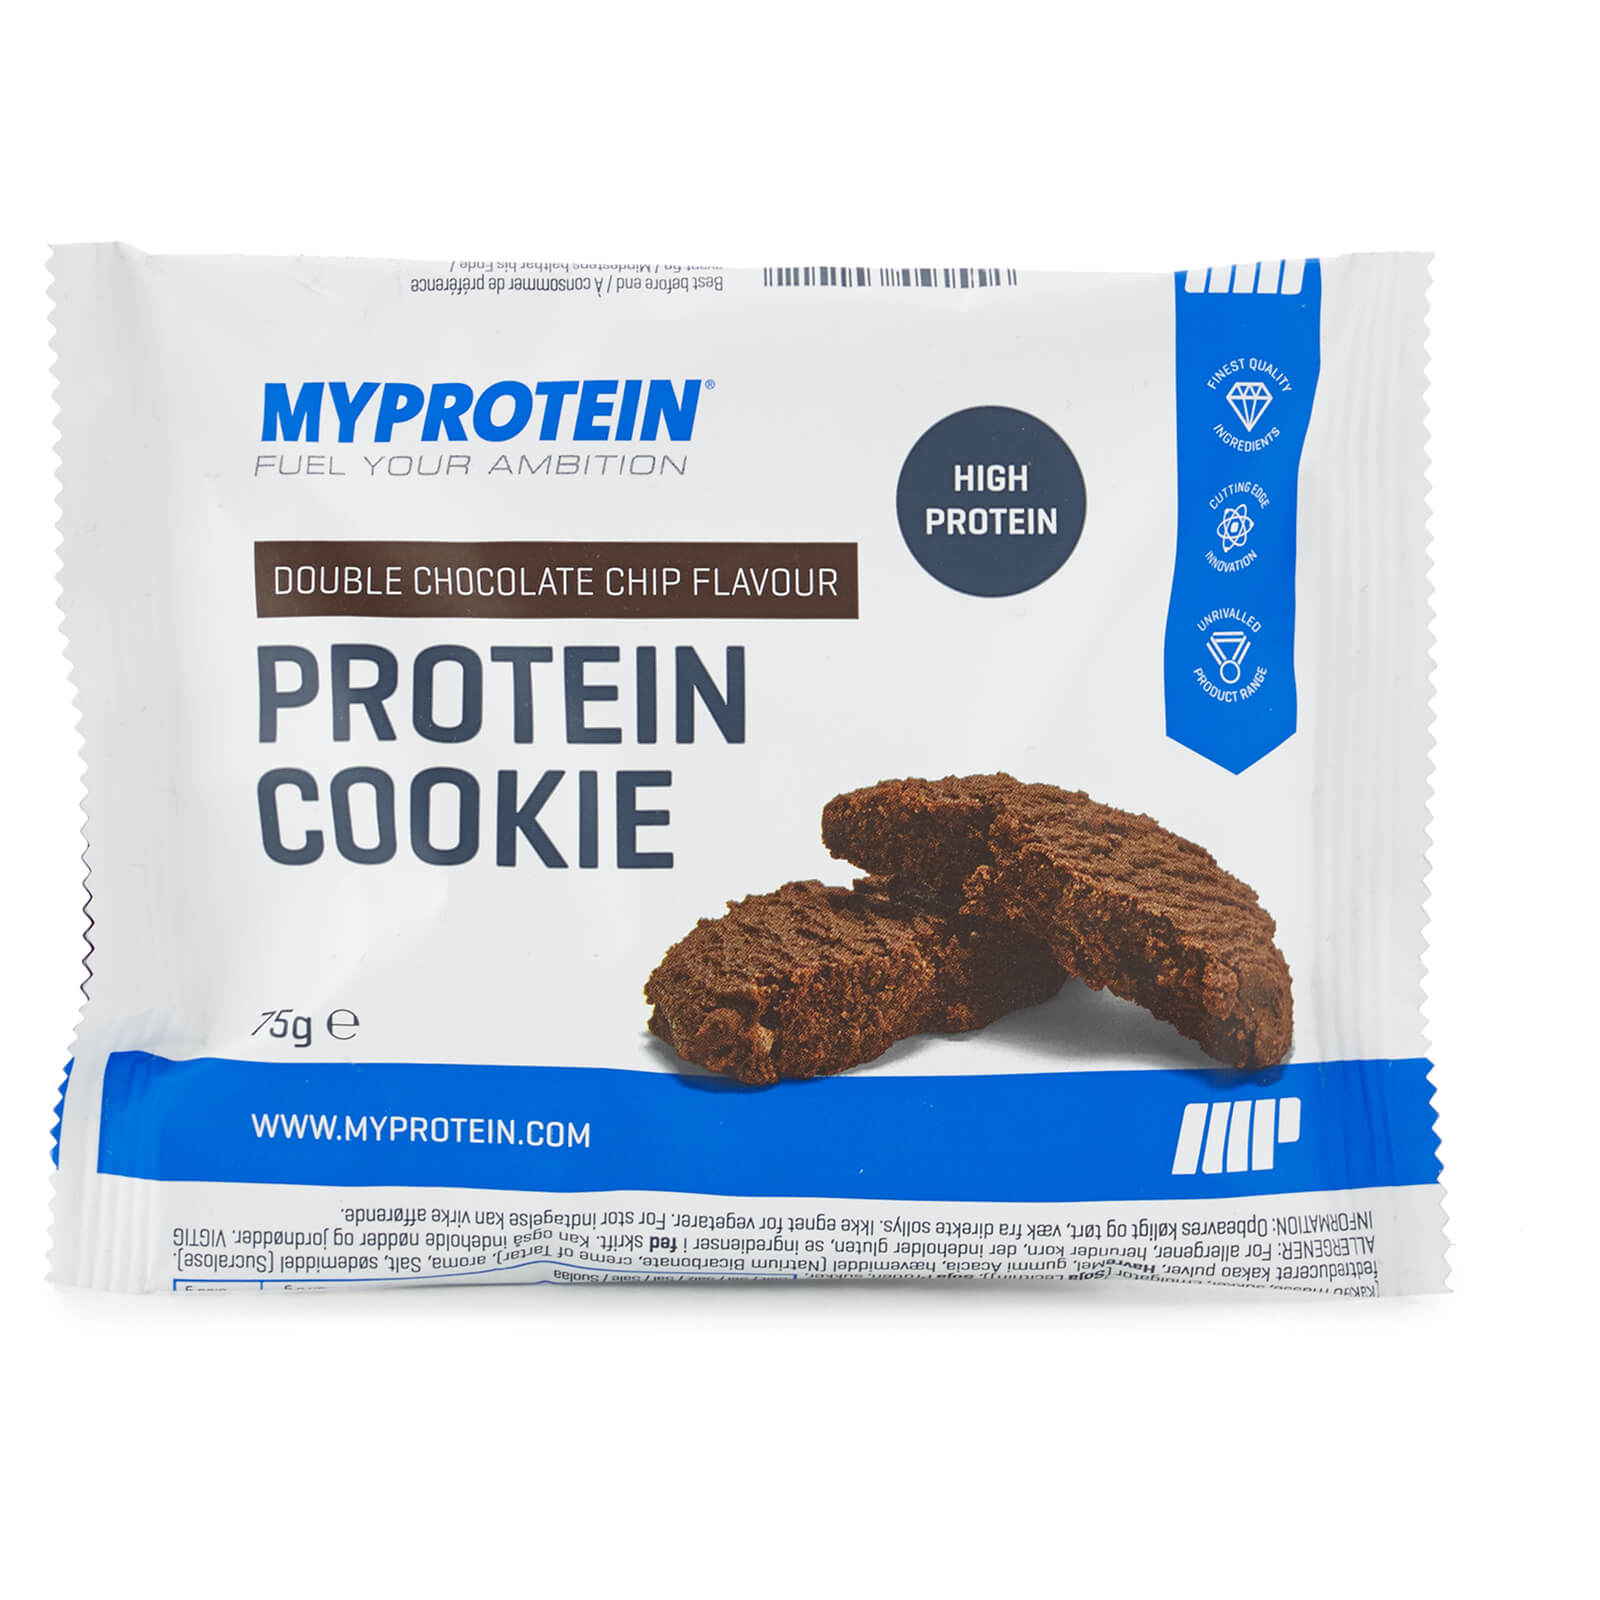 Protein Cookie (Sample), Double Chocolate, Foil, 75g